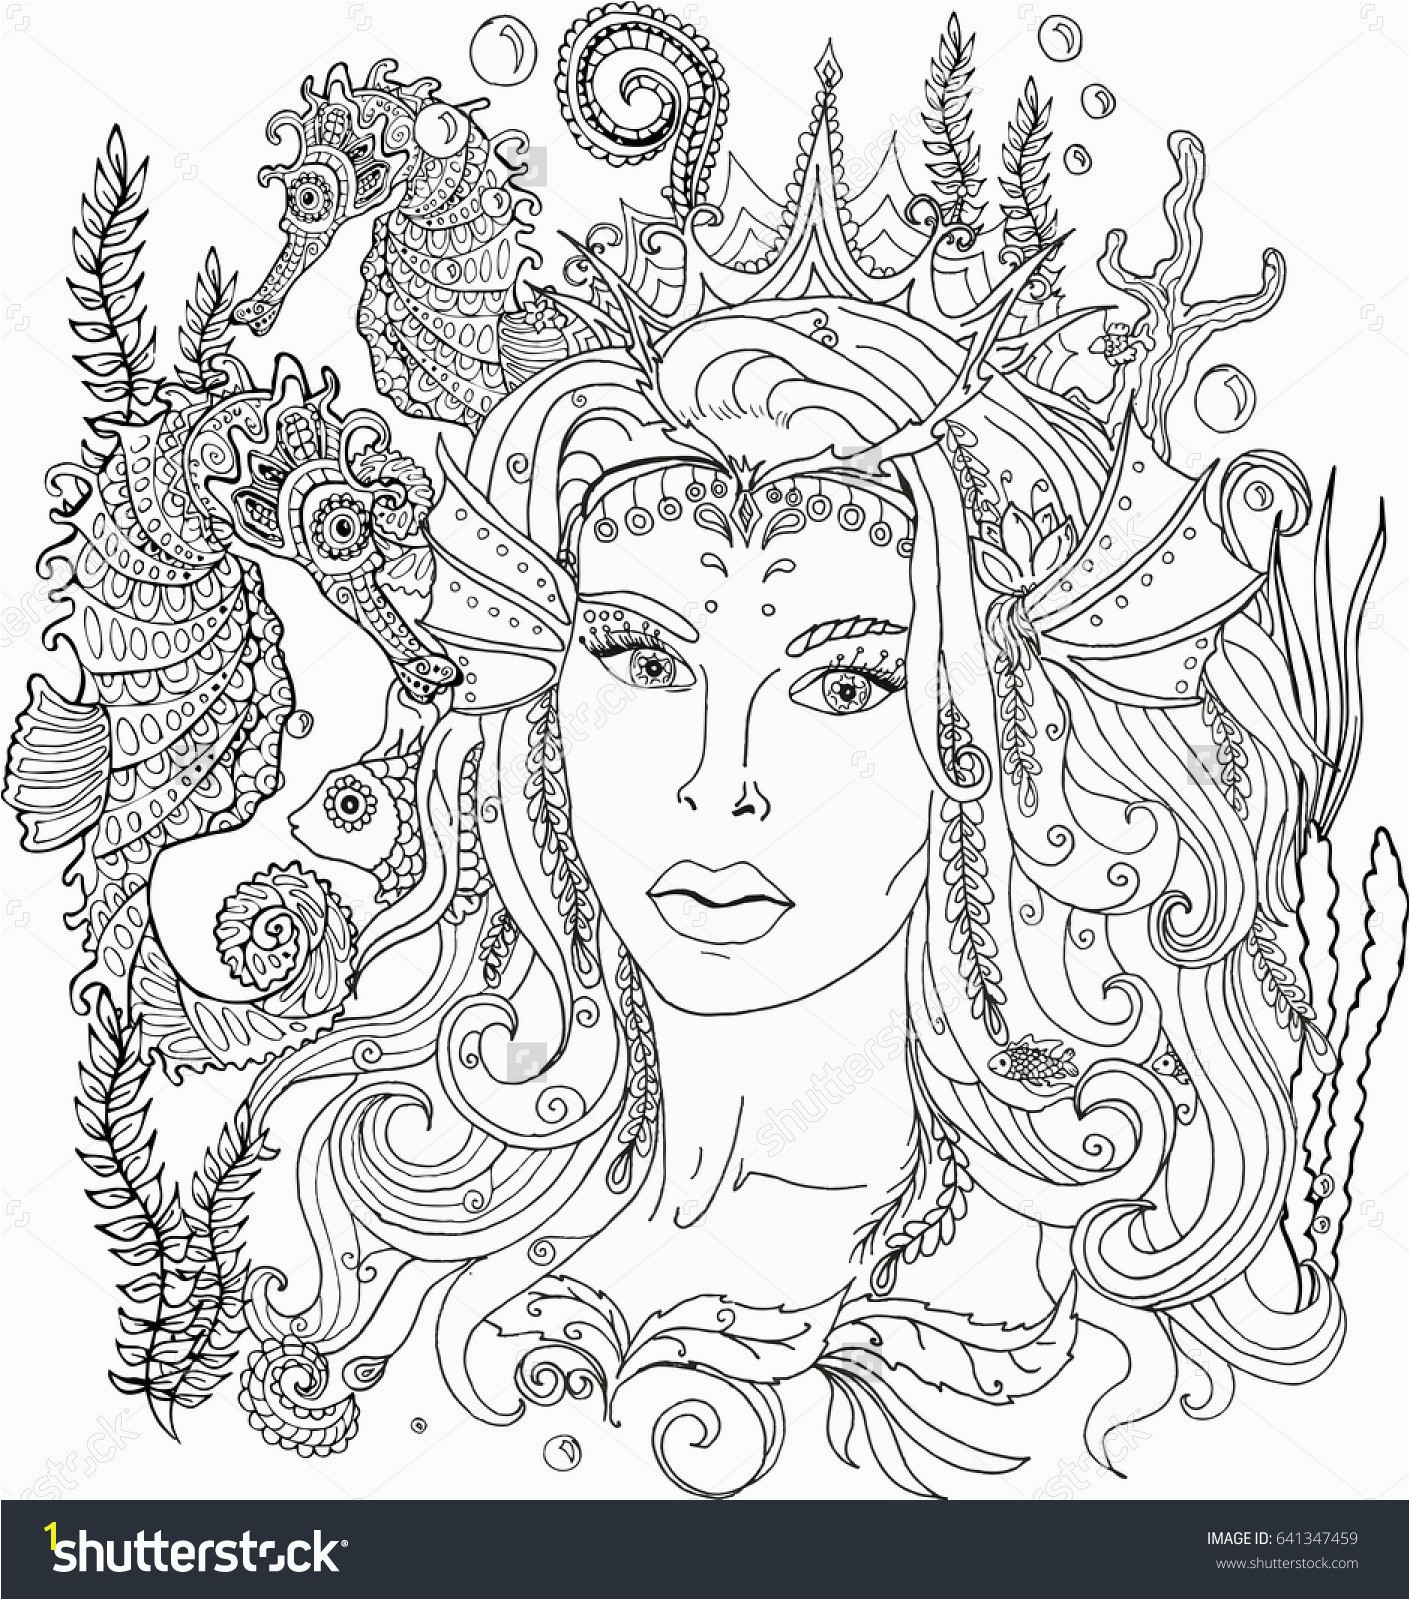 Hair Coloring Pages Inspirational Best Fresh S S Media Cache Ak0 Pinimg originals 0d B4 2c Free